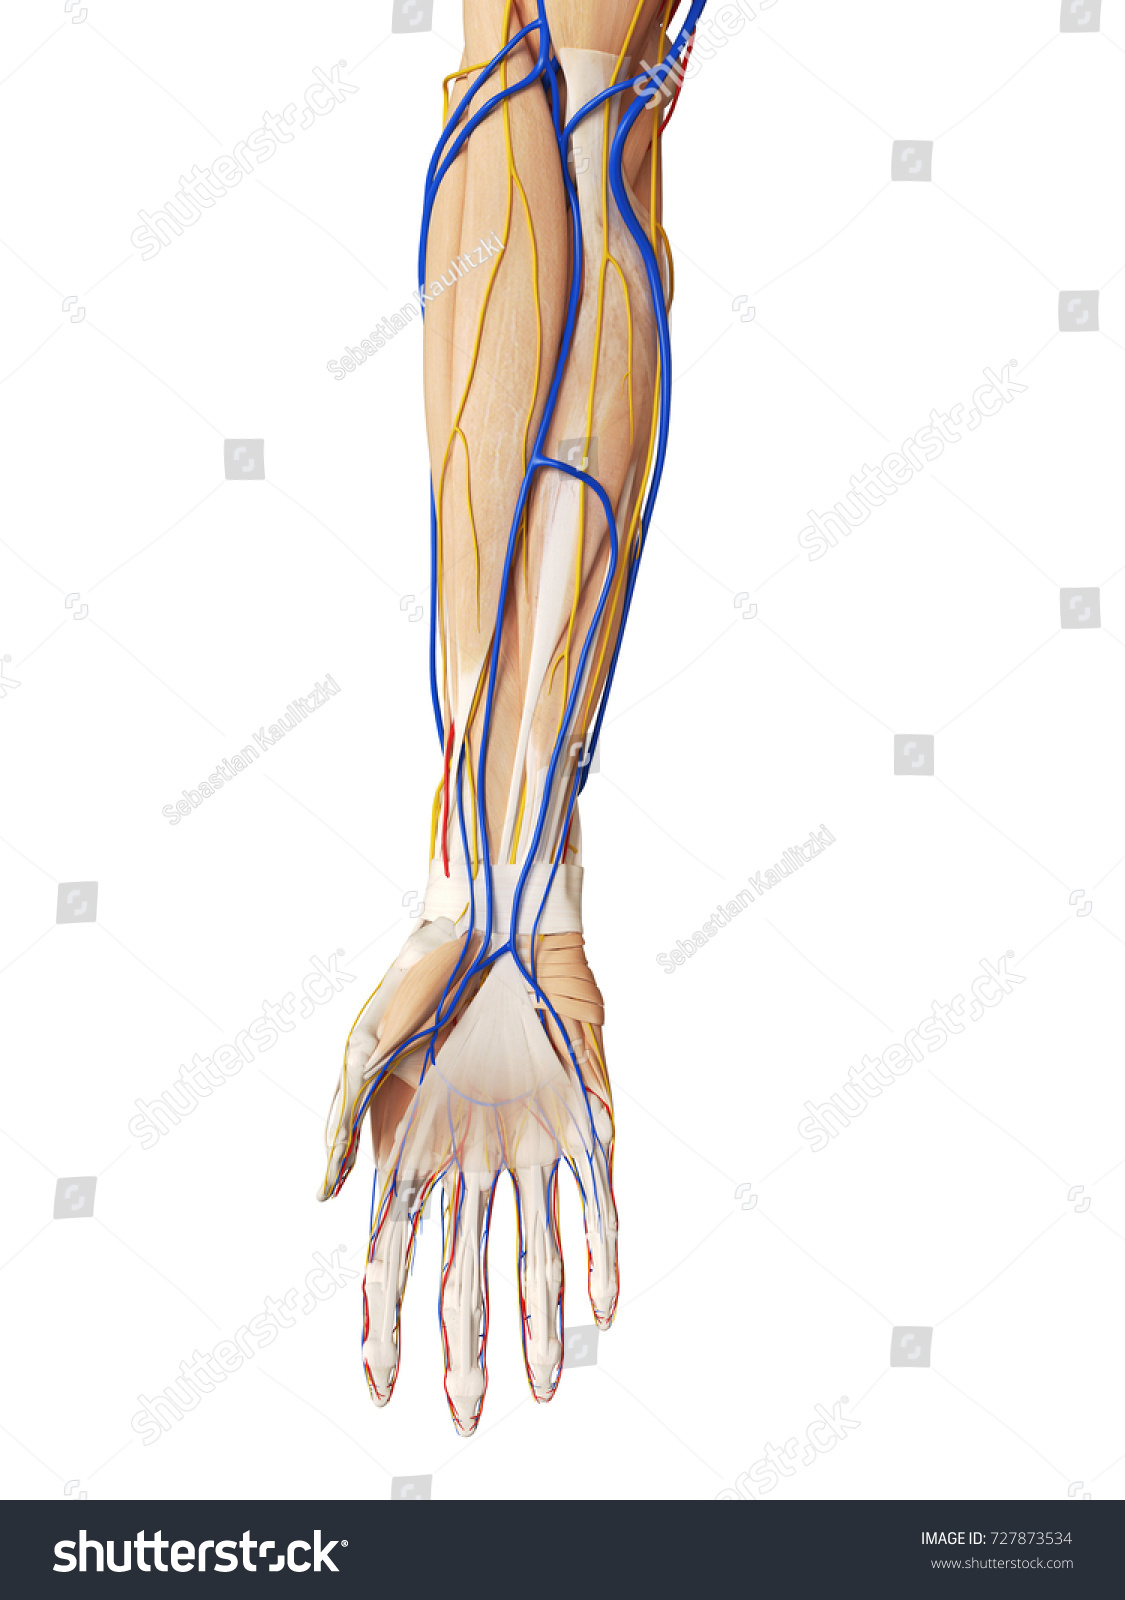 3 D Rendered Medically Accurate Illustration Arm Stock Illustration ...